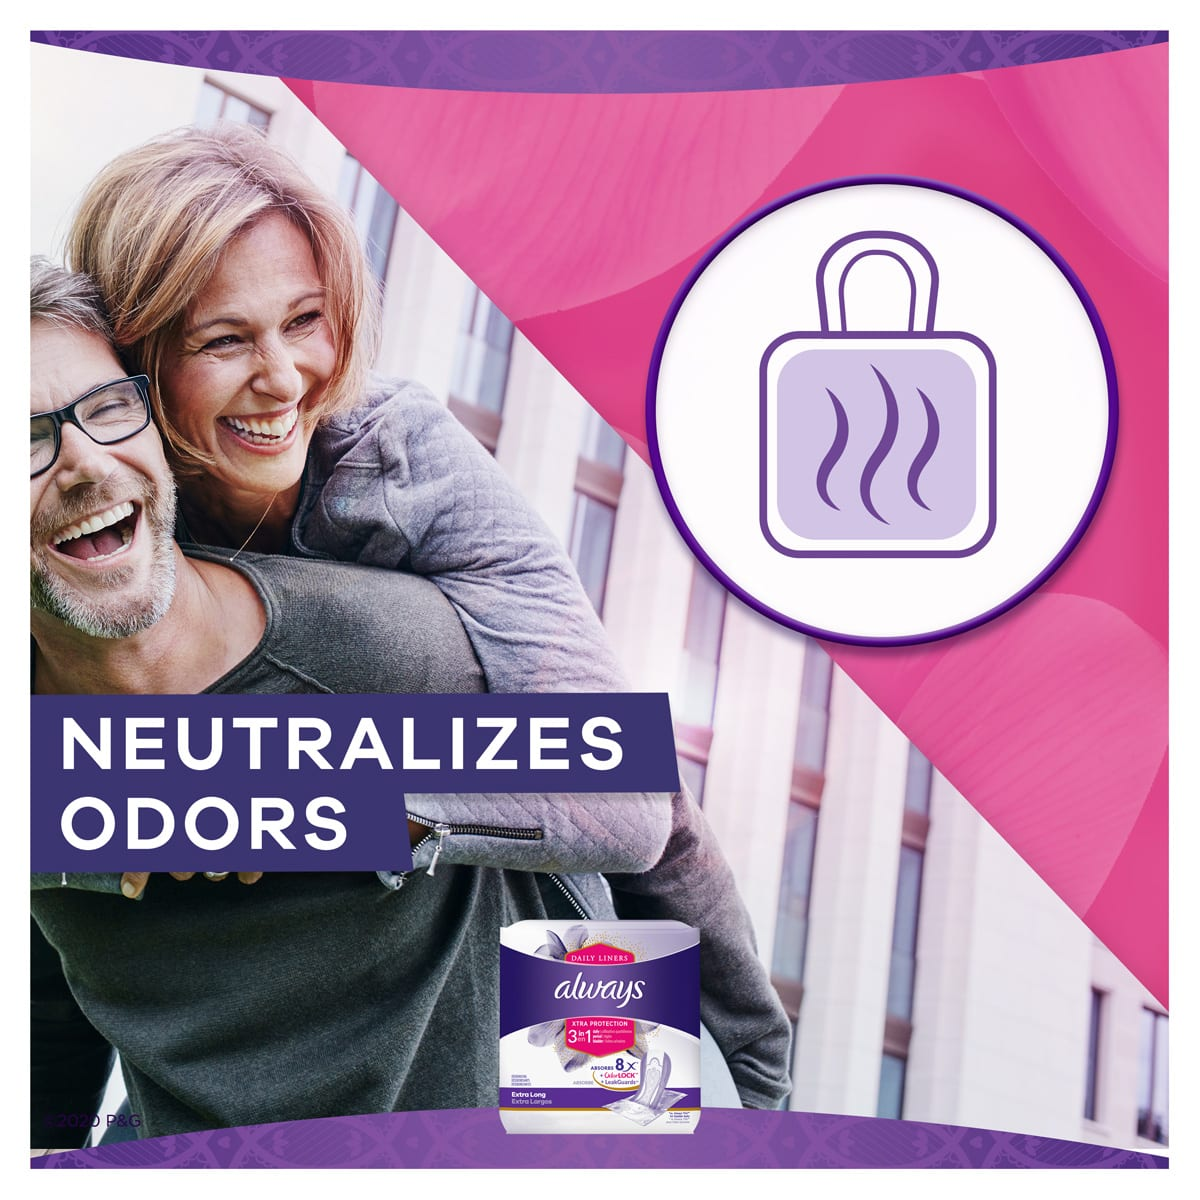 Always Xtra Protect 3 in 1 Extra Long Liners Neutralizes Odor benefit